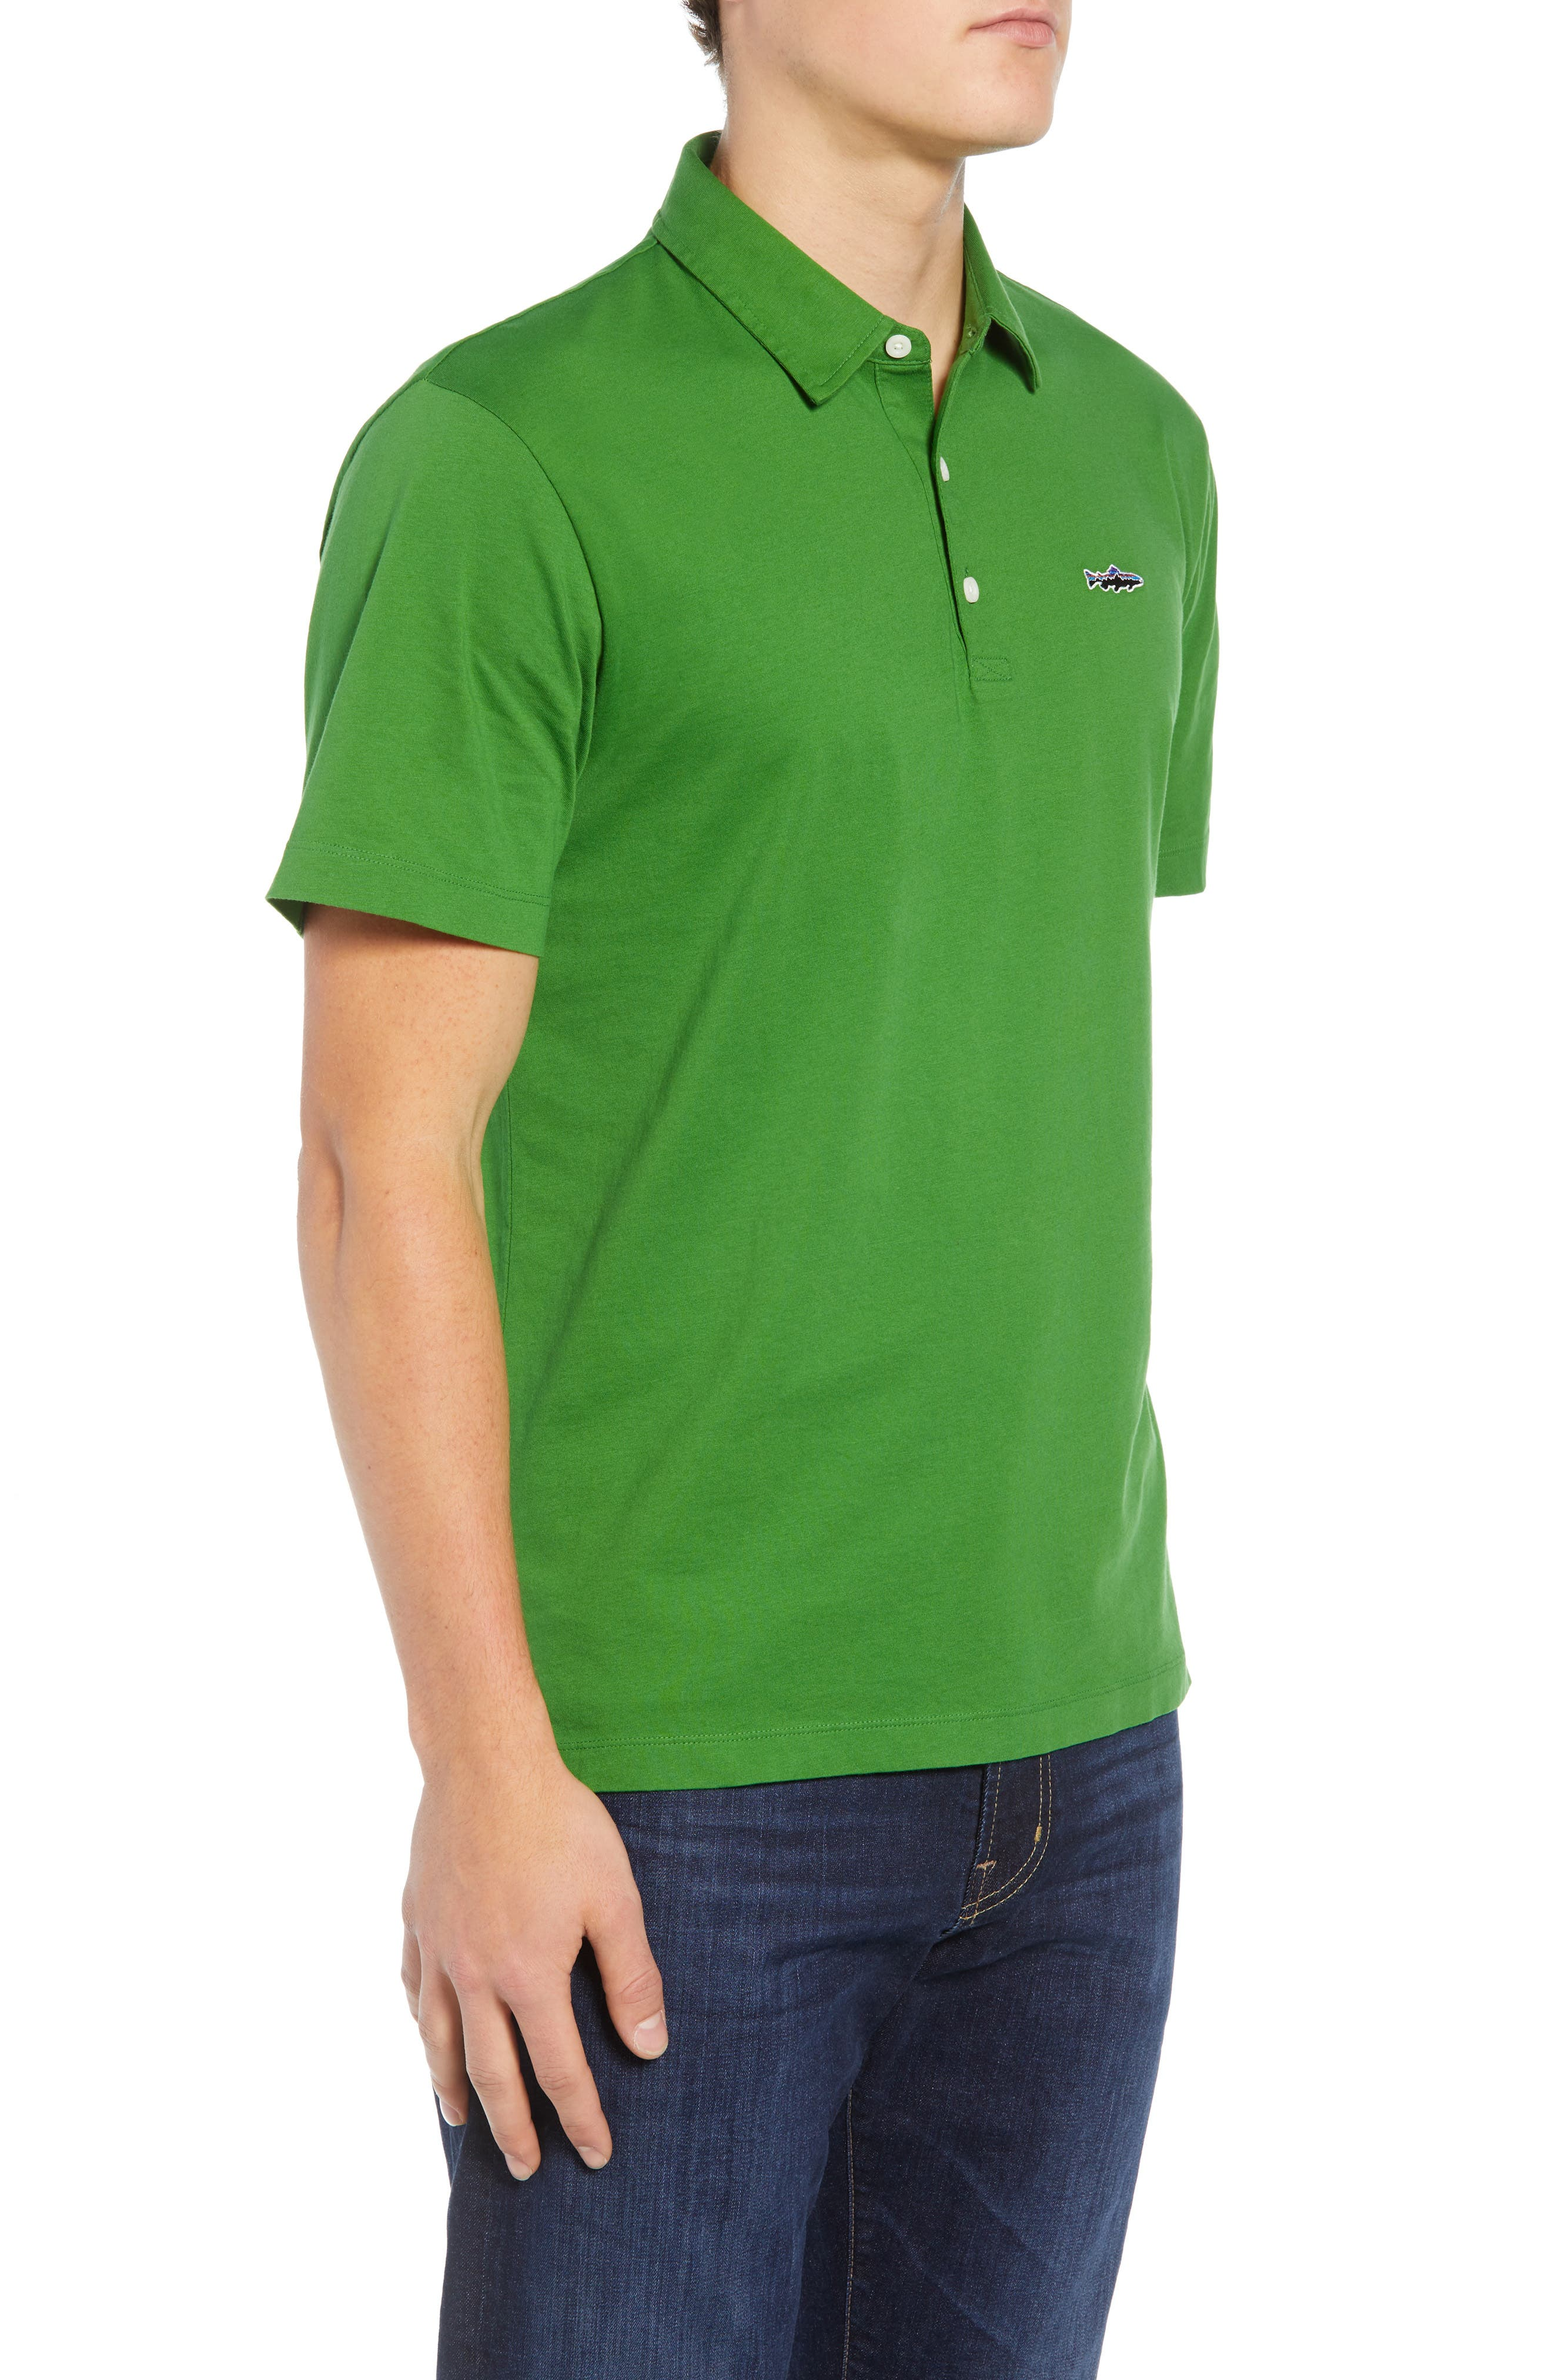 'Trout Fitz Roy' Organic Cotton Polo,                             Alternate thumbnail 3, color,                             MYRTLE GREEN